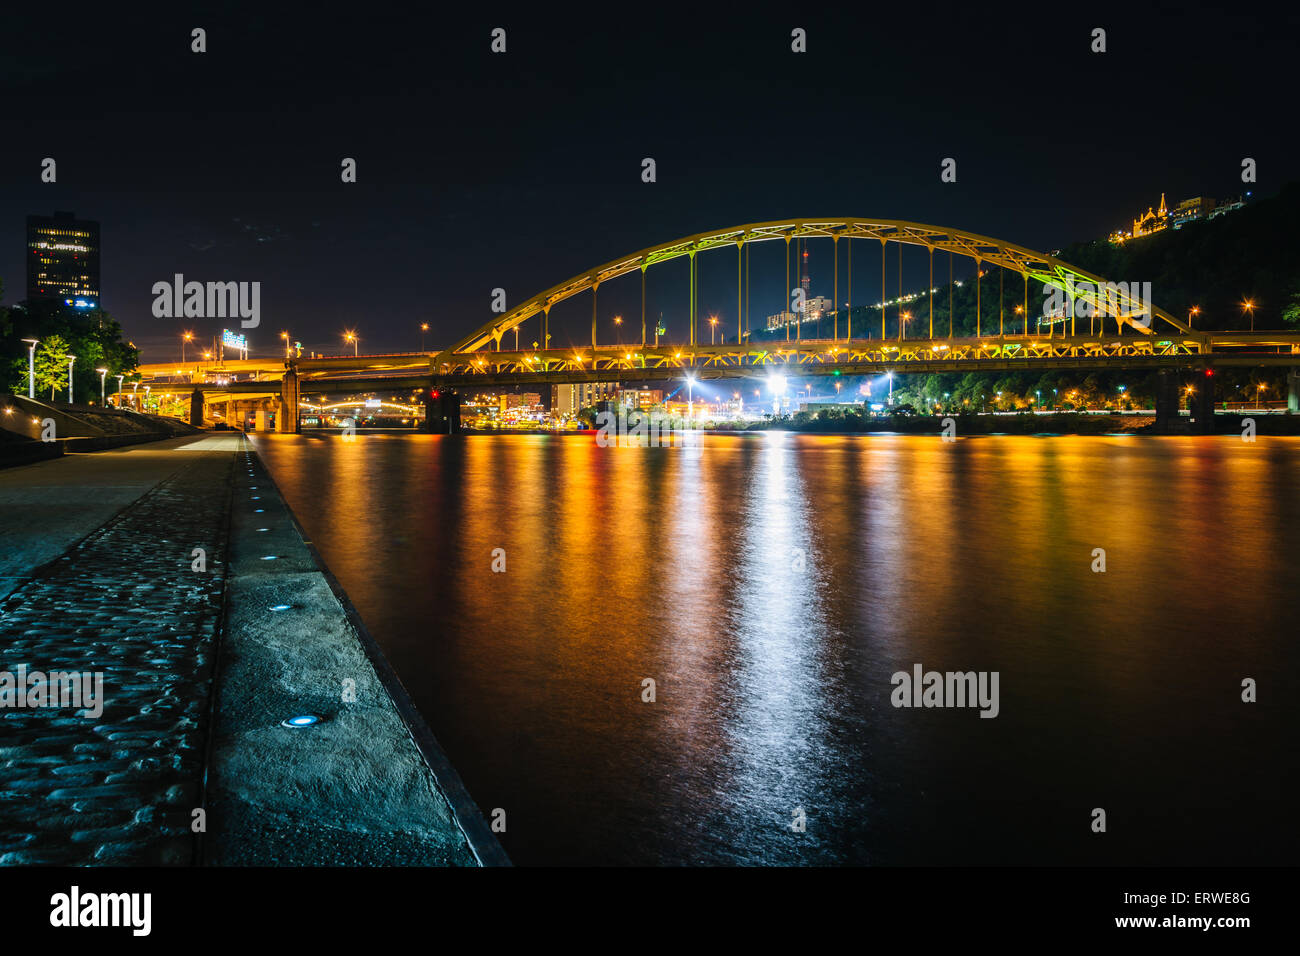 Fort Pitt Bridge at night, seen from Point State Park, in Pittsburgh, Pennsylvania. Stock Photo